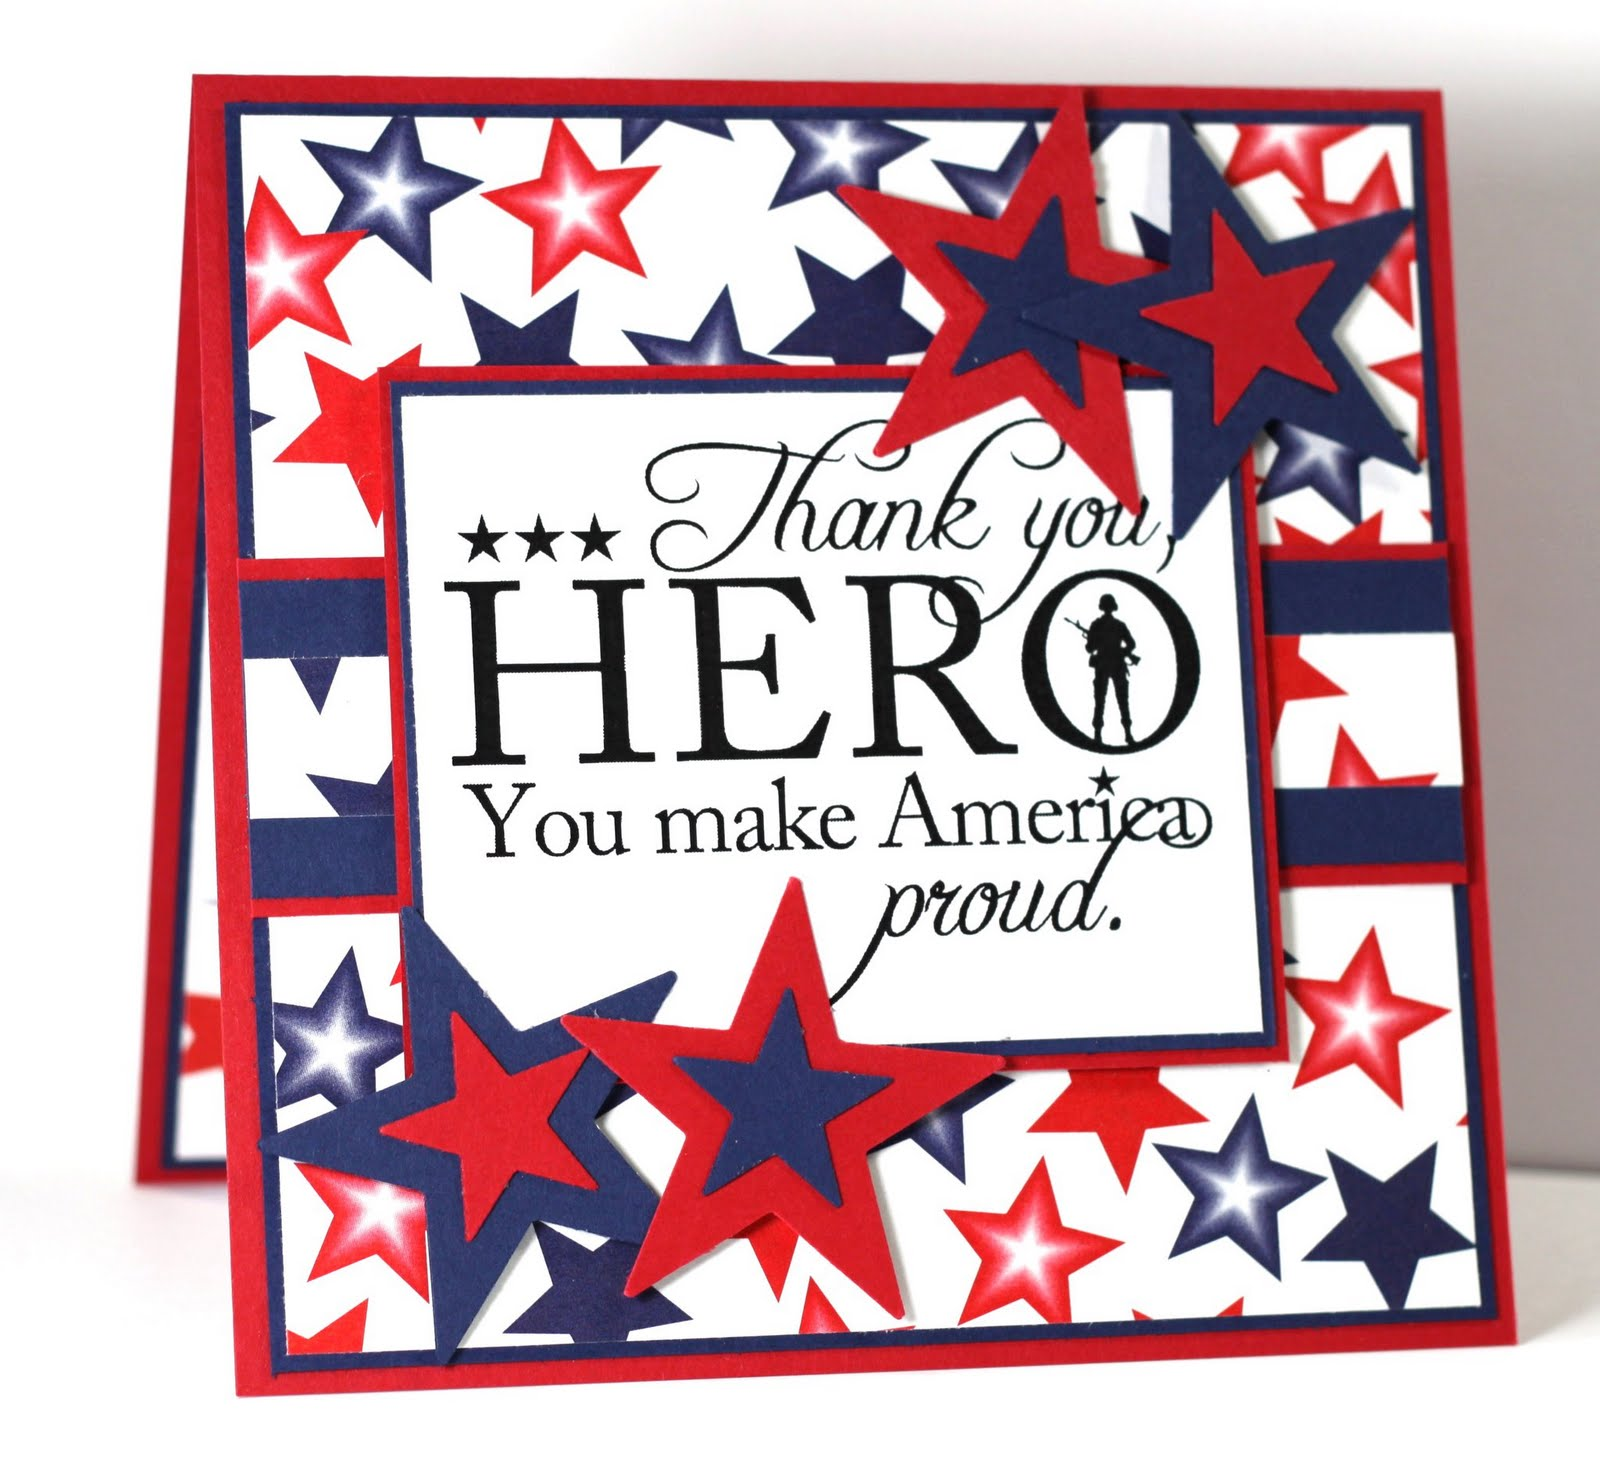 This is a picture of Revered Military Thank You Cards Free Printable